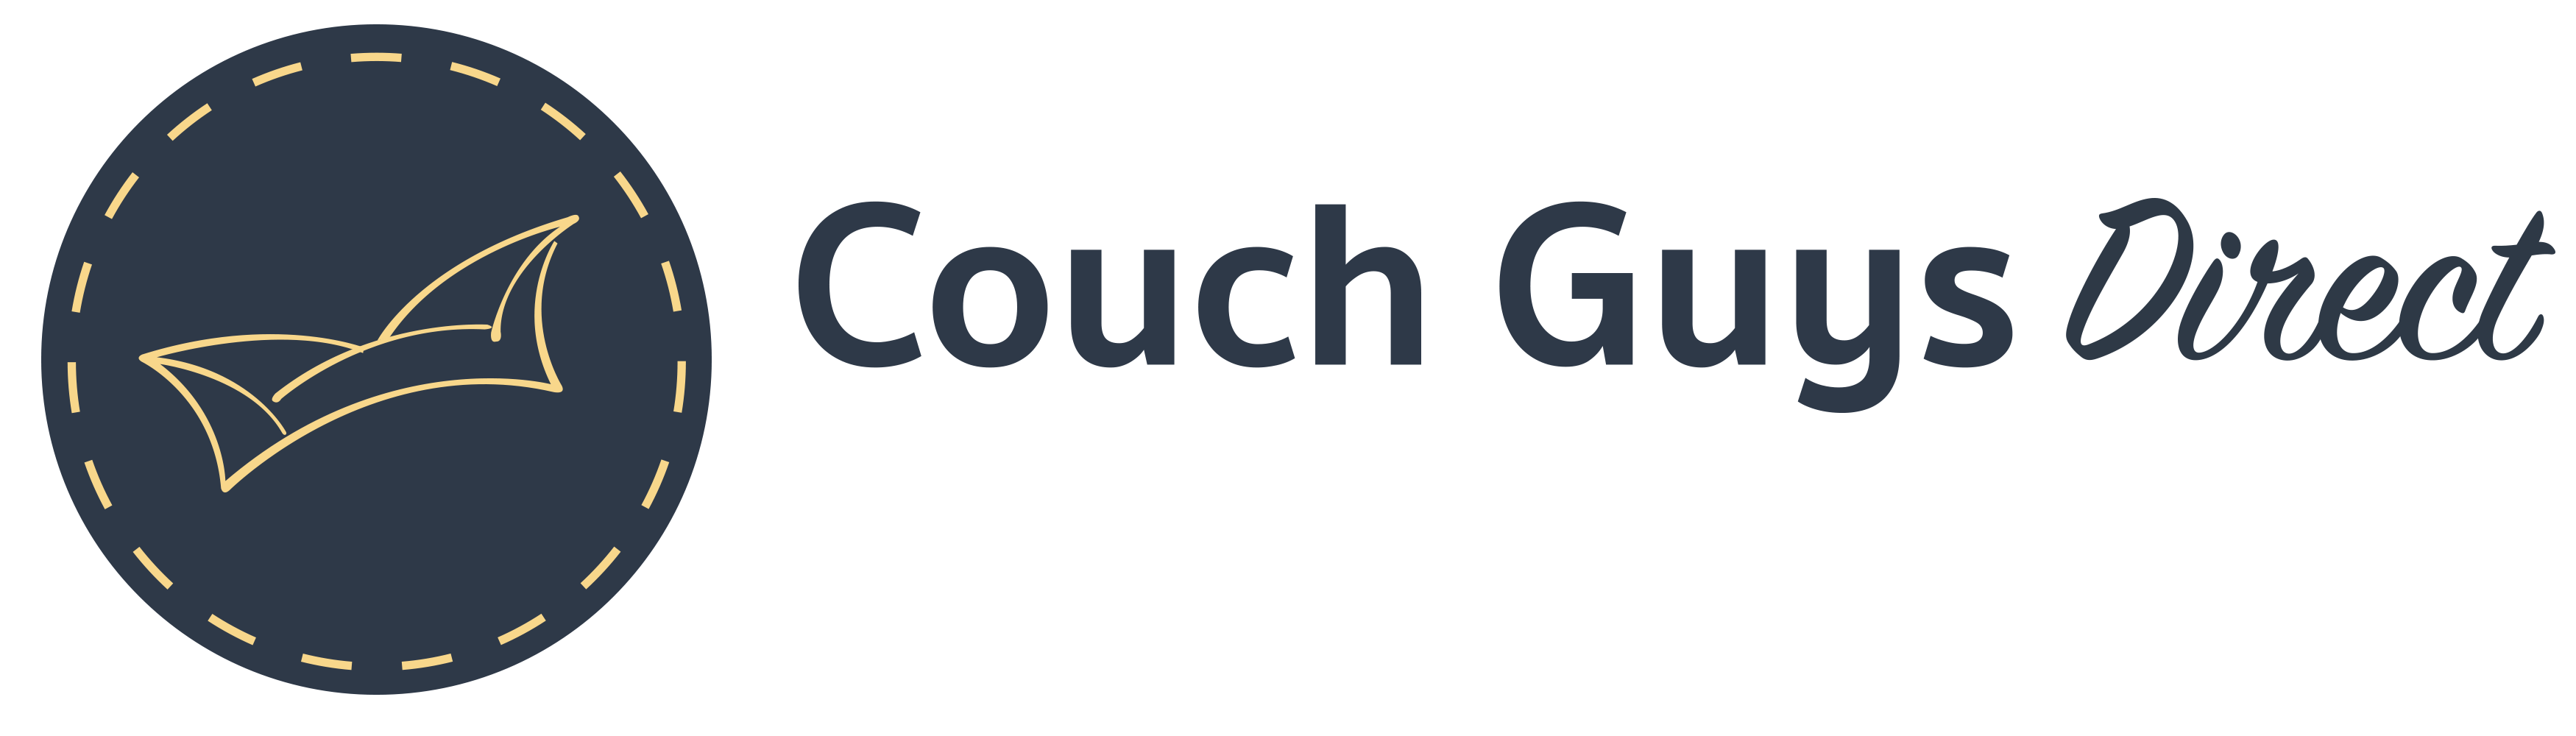 Couch Guys Direct